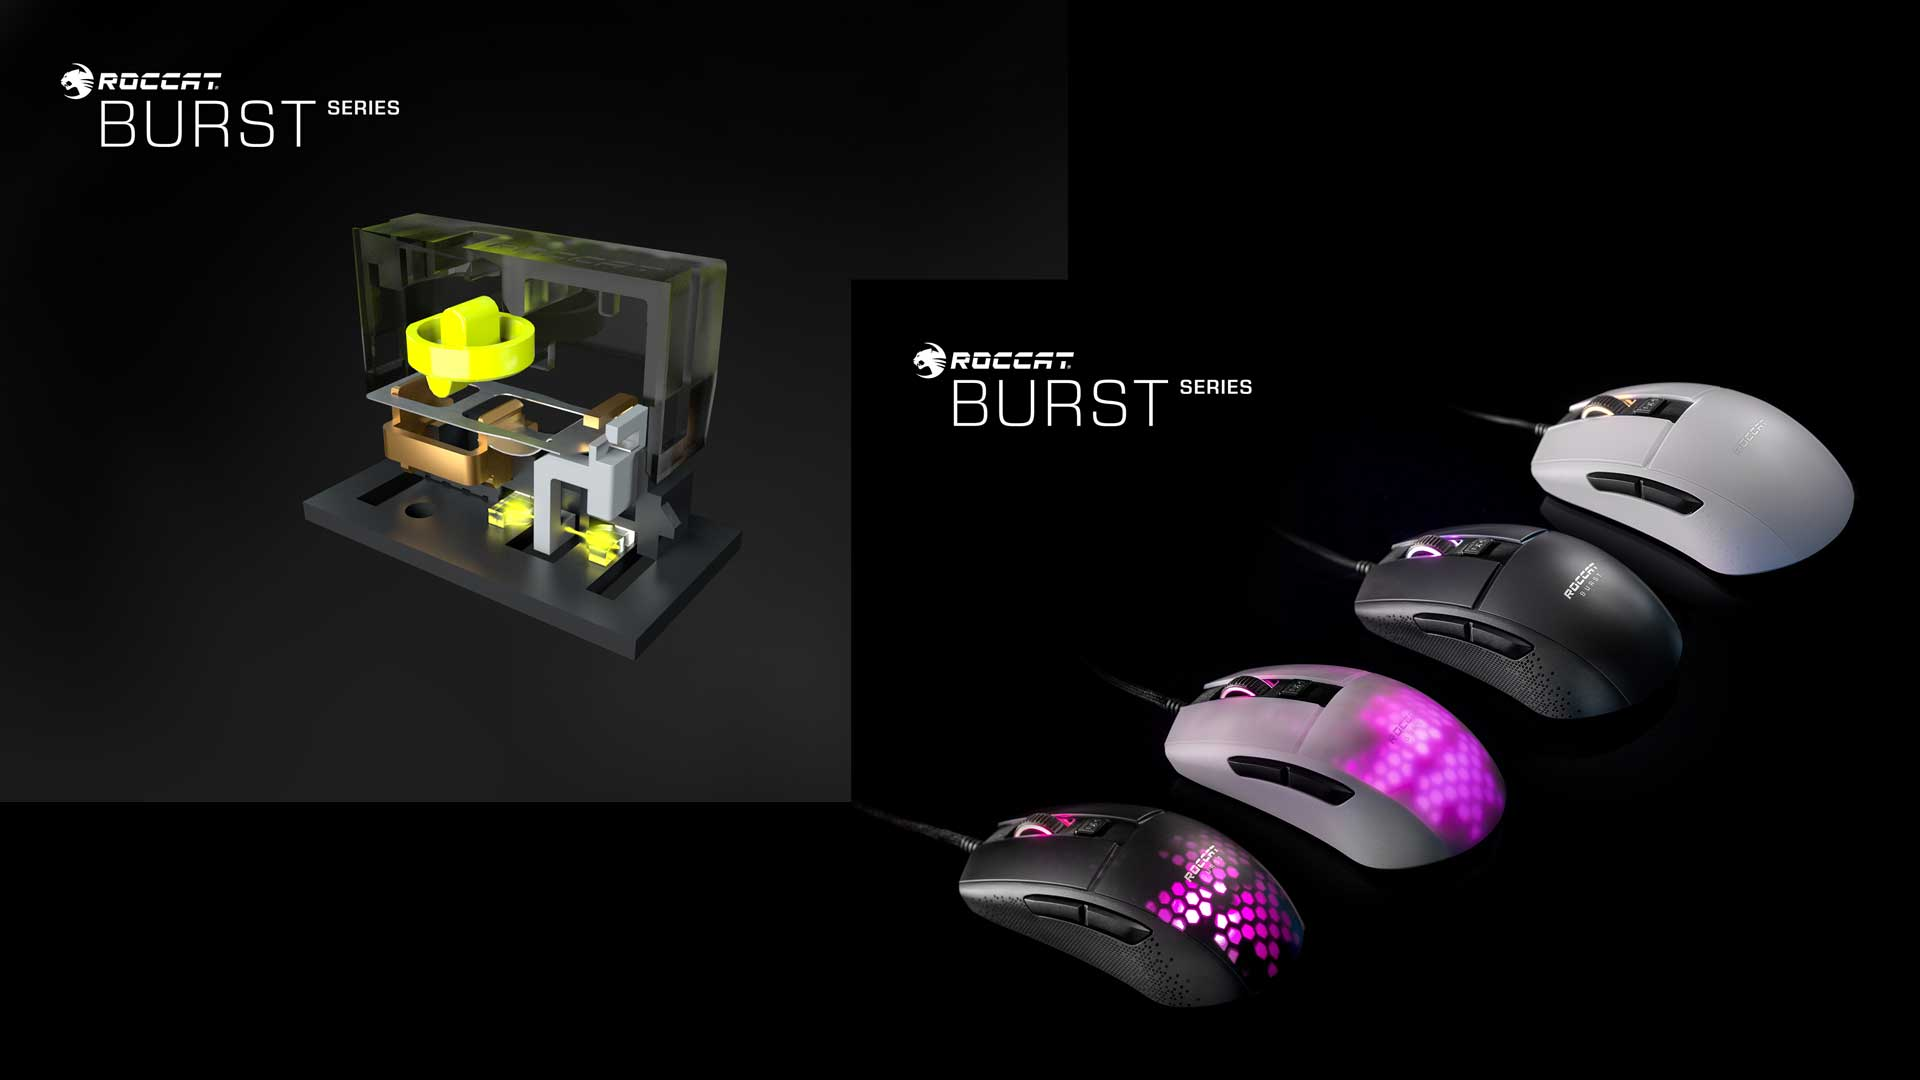 ROCCAT Burst Series Presspic 001 babt